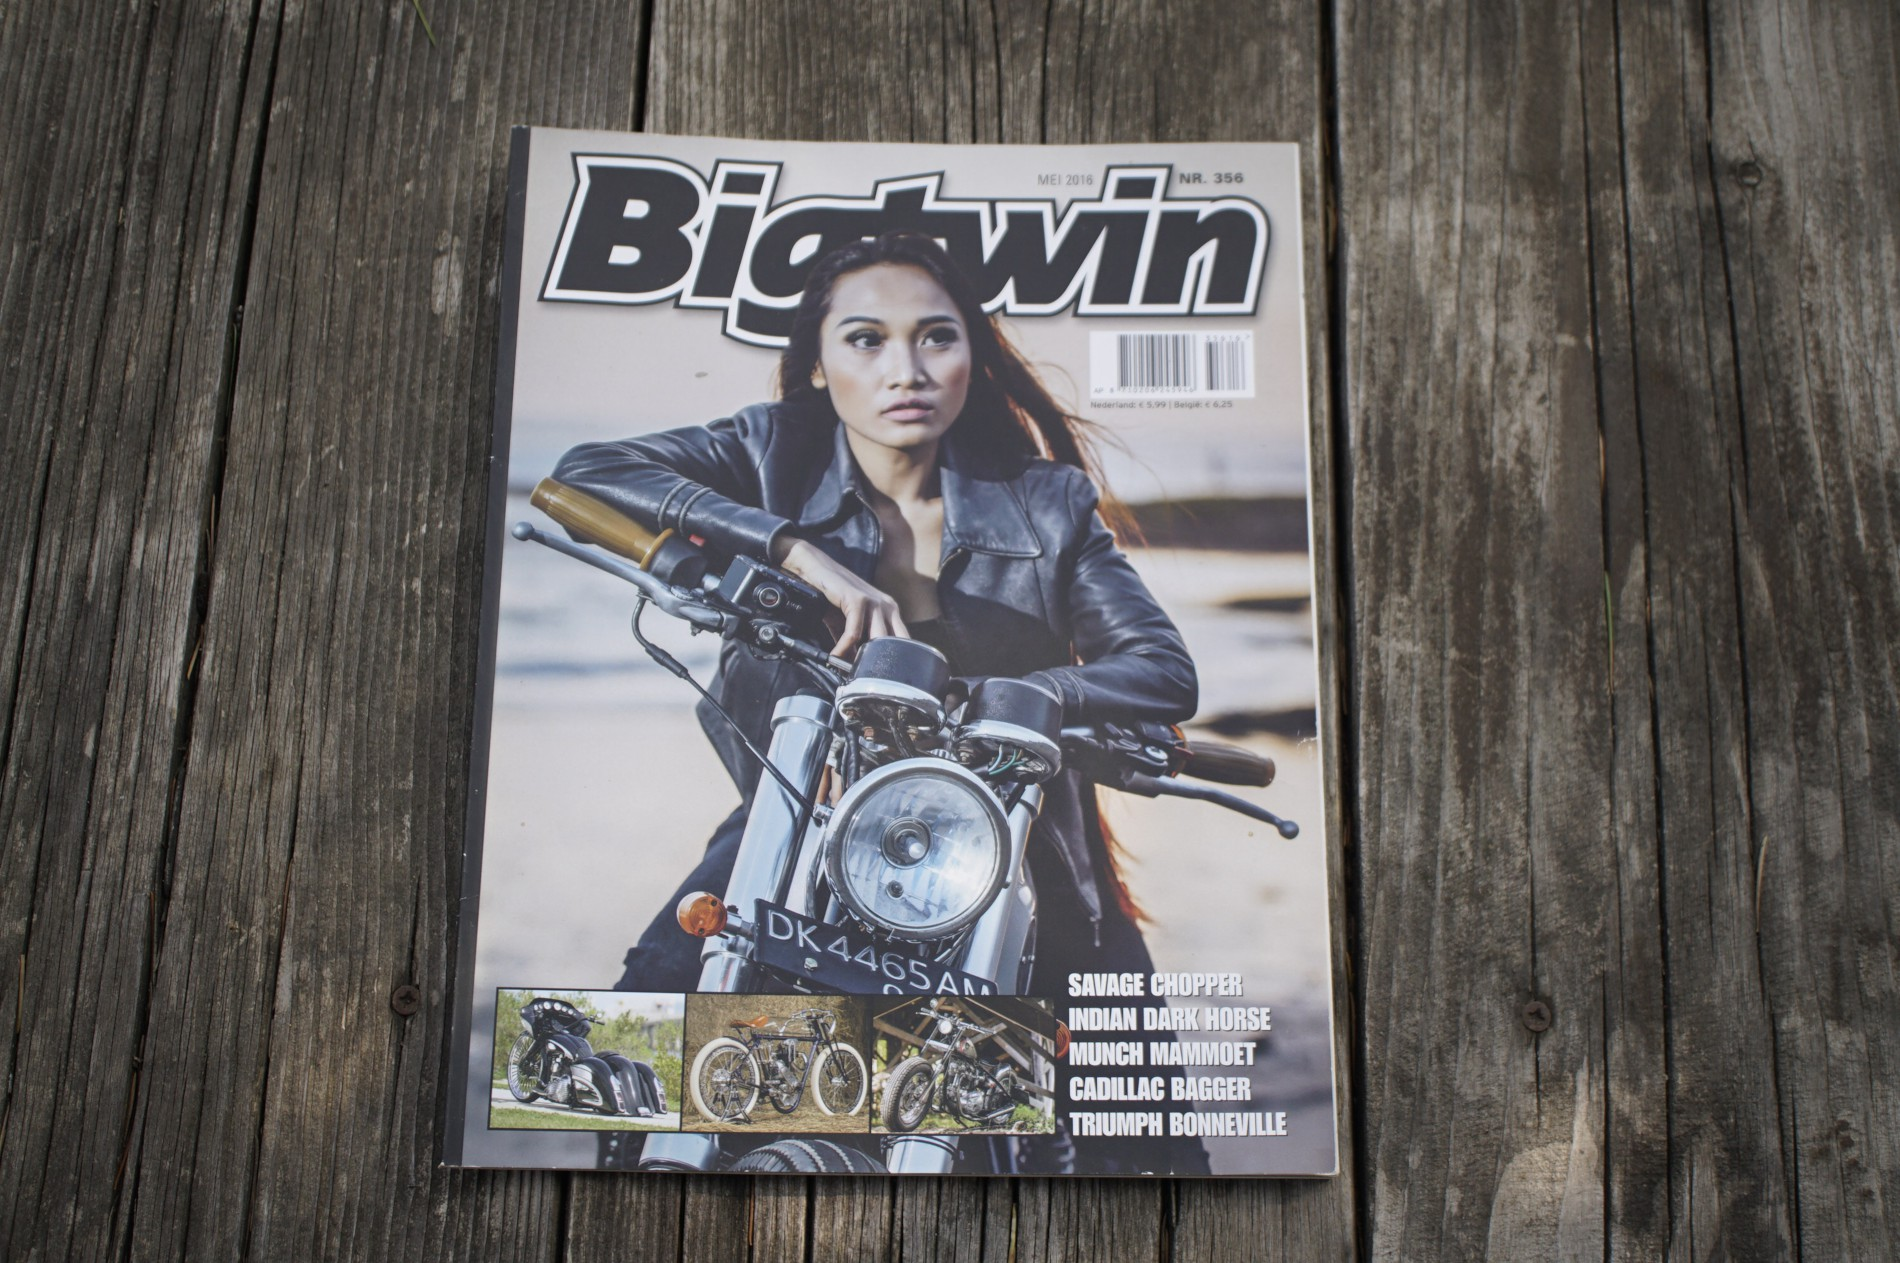 Big Twin magazine 356